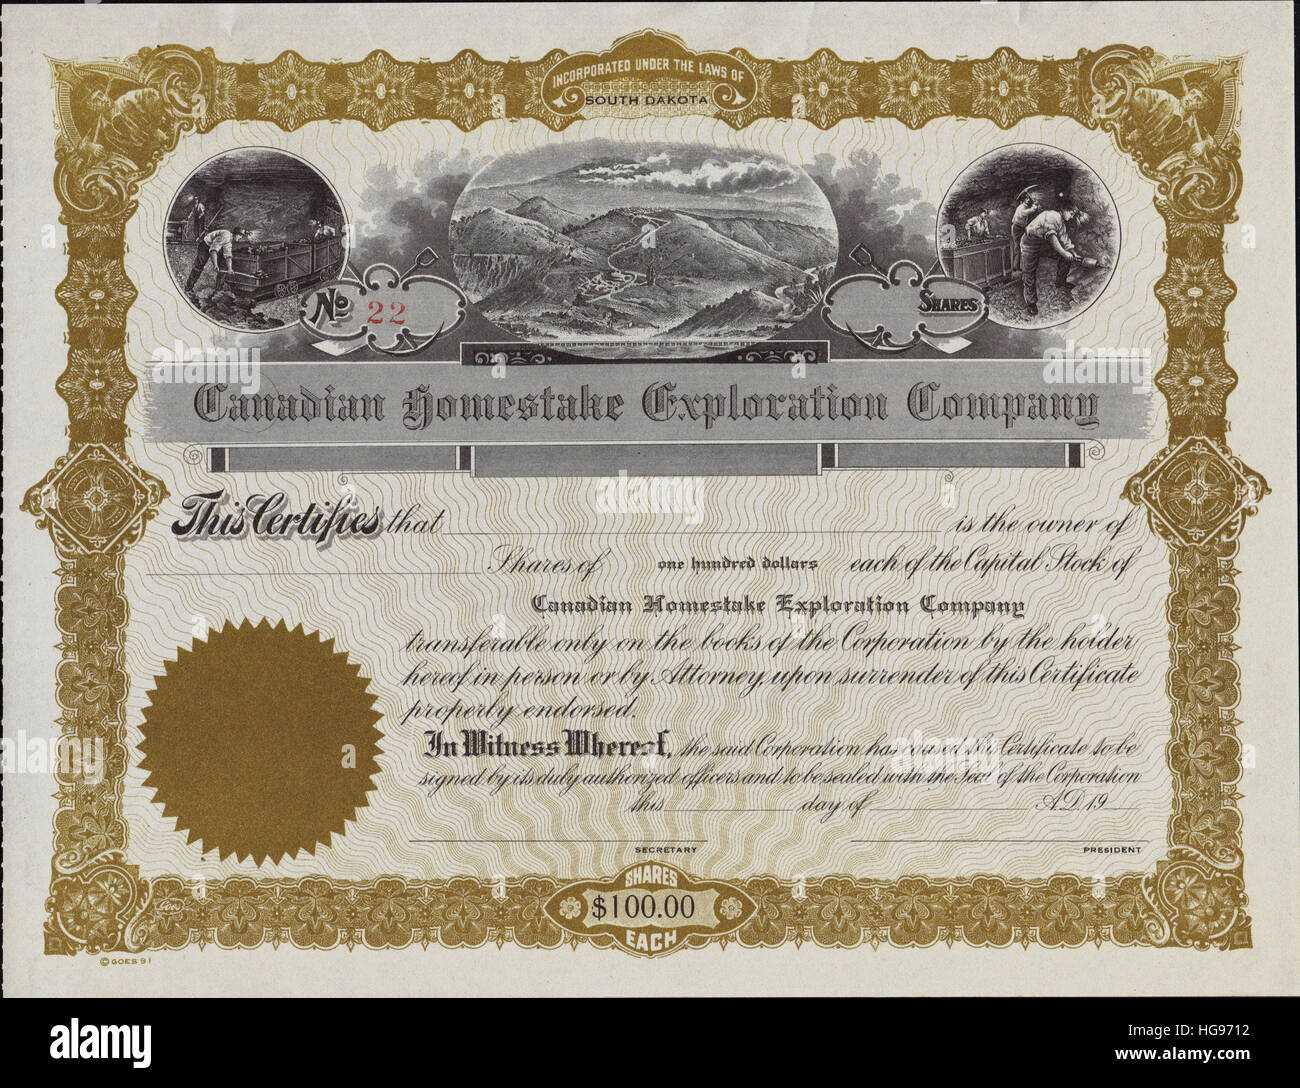 Early 1900s Canadian Homestake Exploration Company Stock Certificate - Incorporated in South Dakota - Stock Image